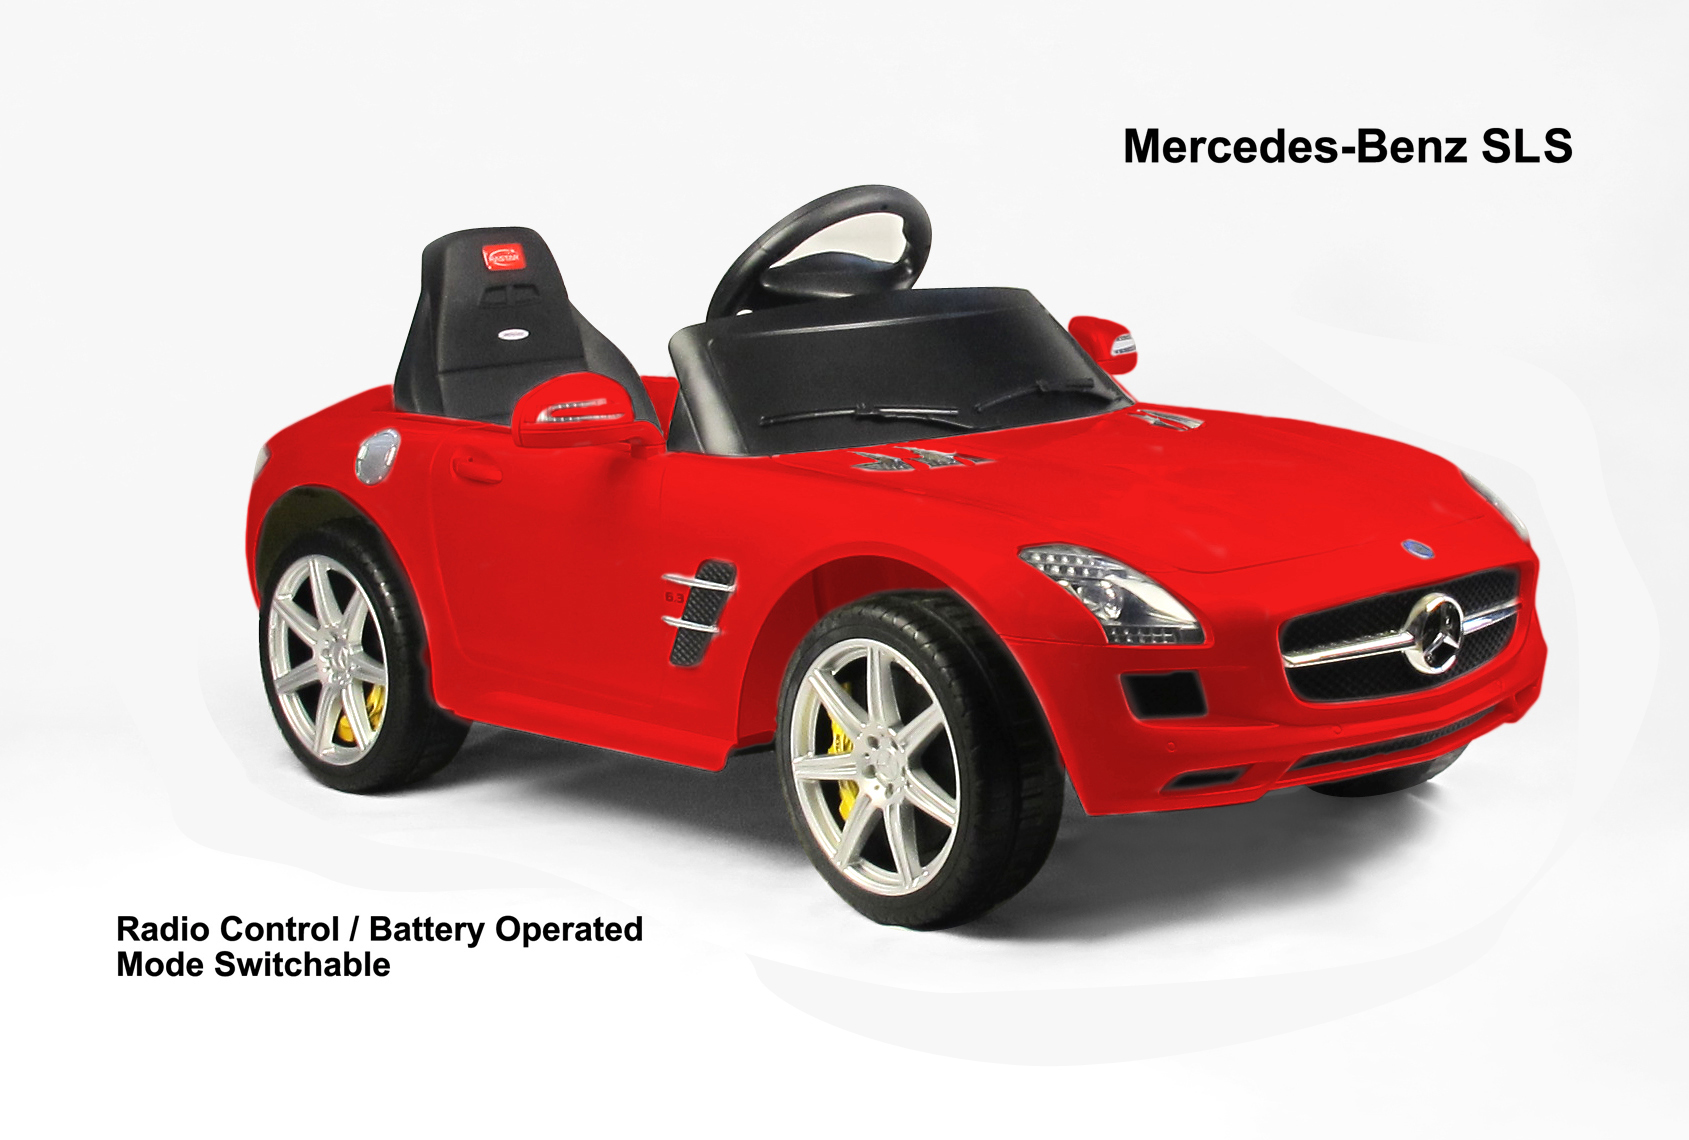 meedes benz sls 6v electric children s battery powered under licensed ride on car with red rc remote control radio car